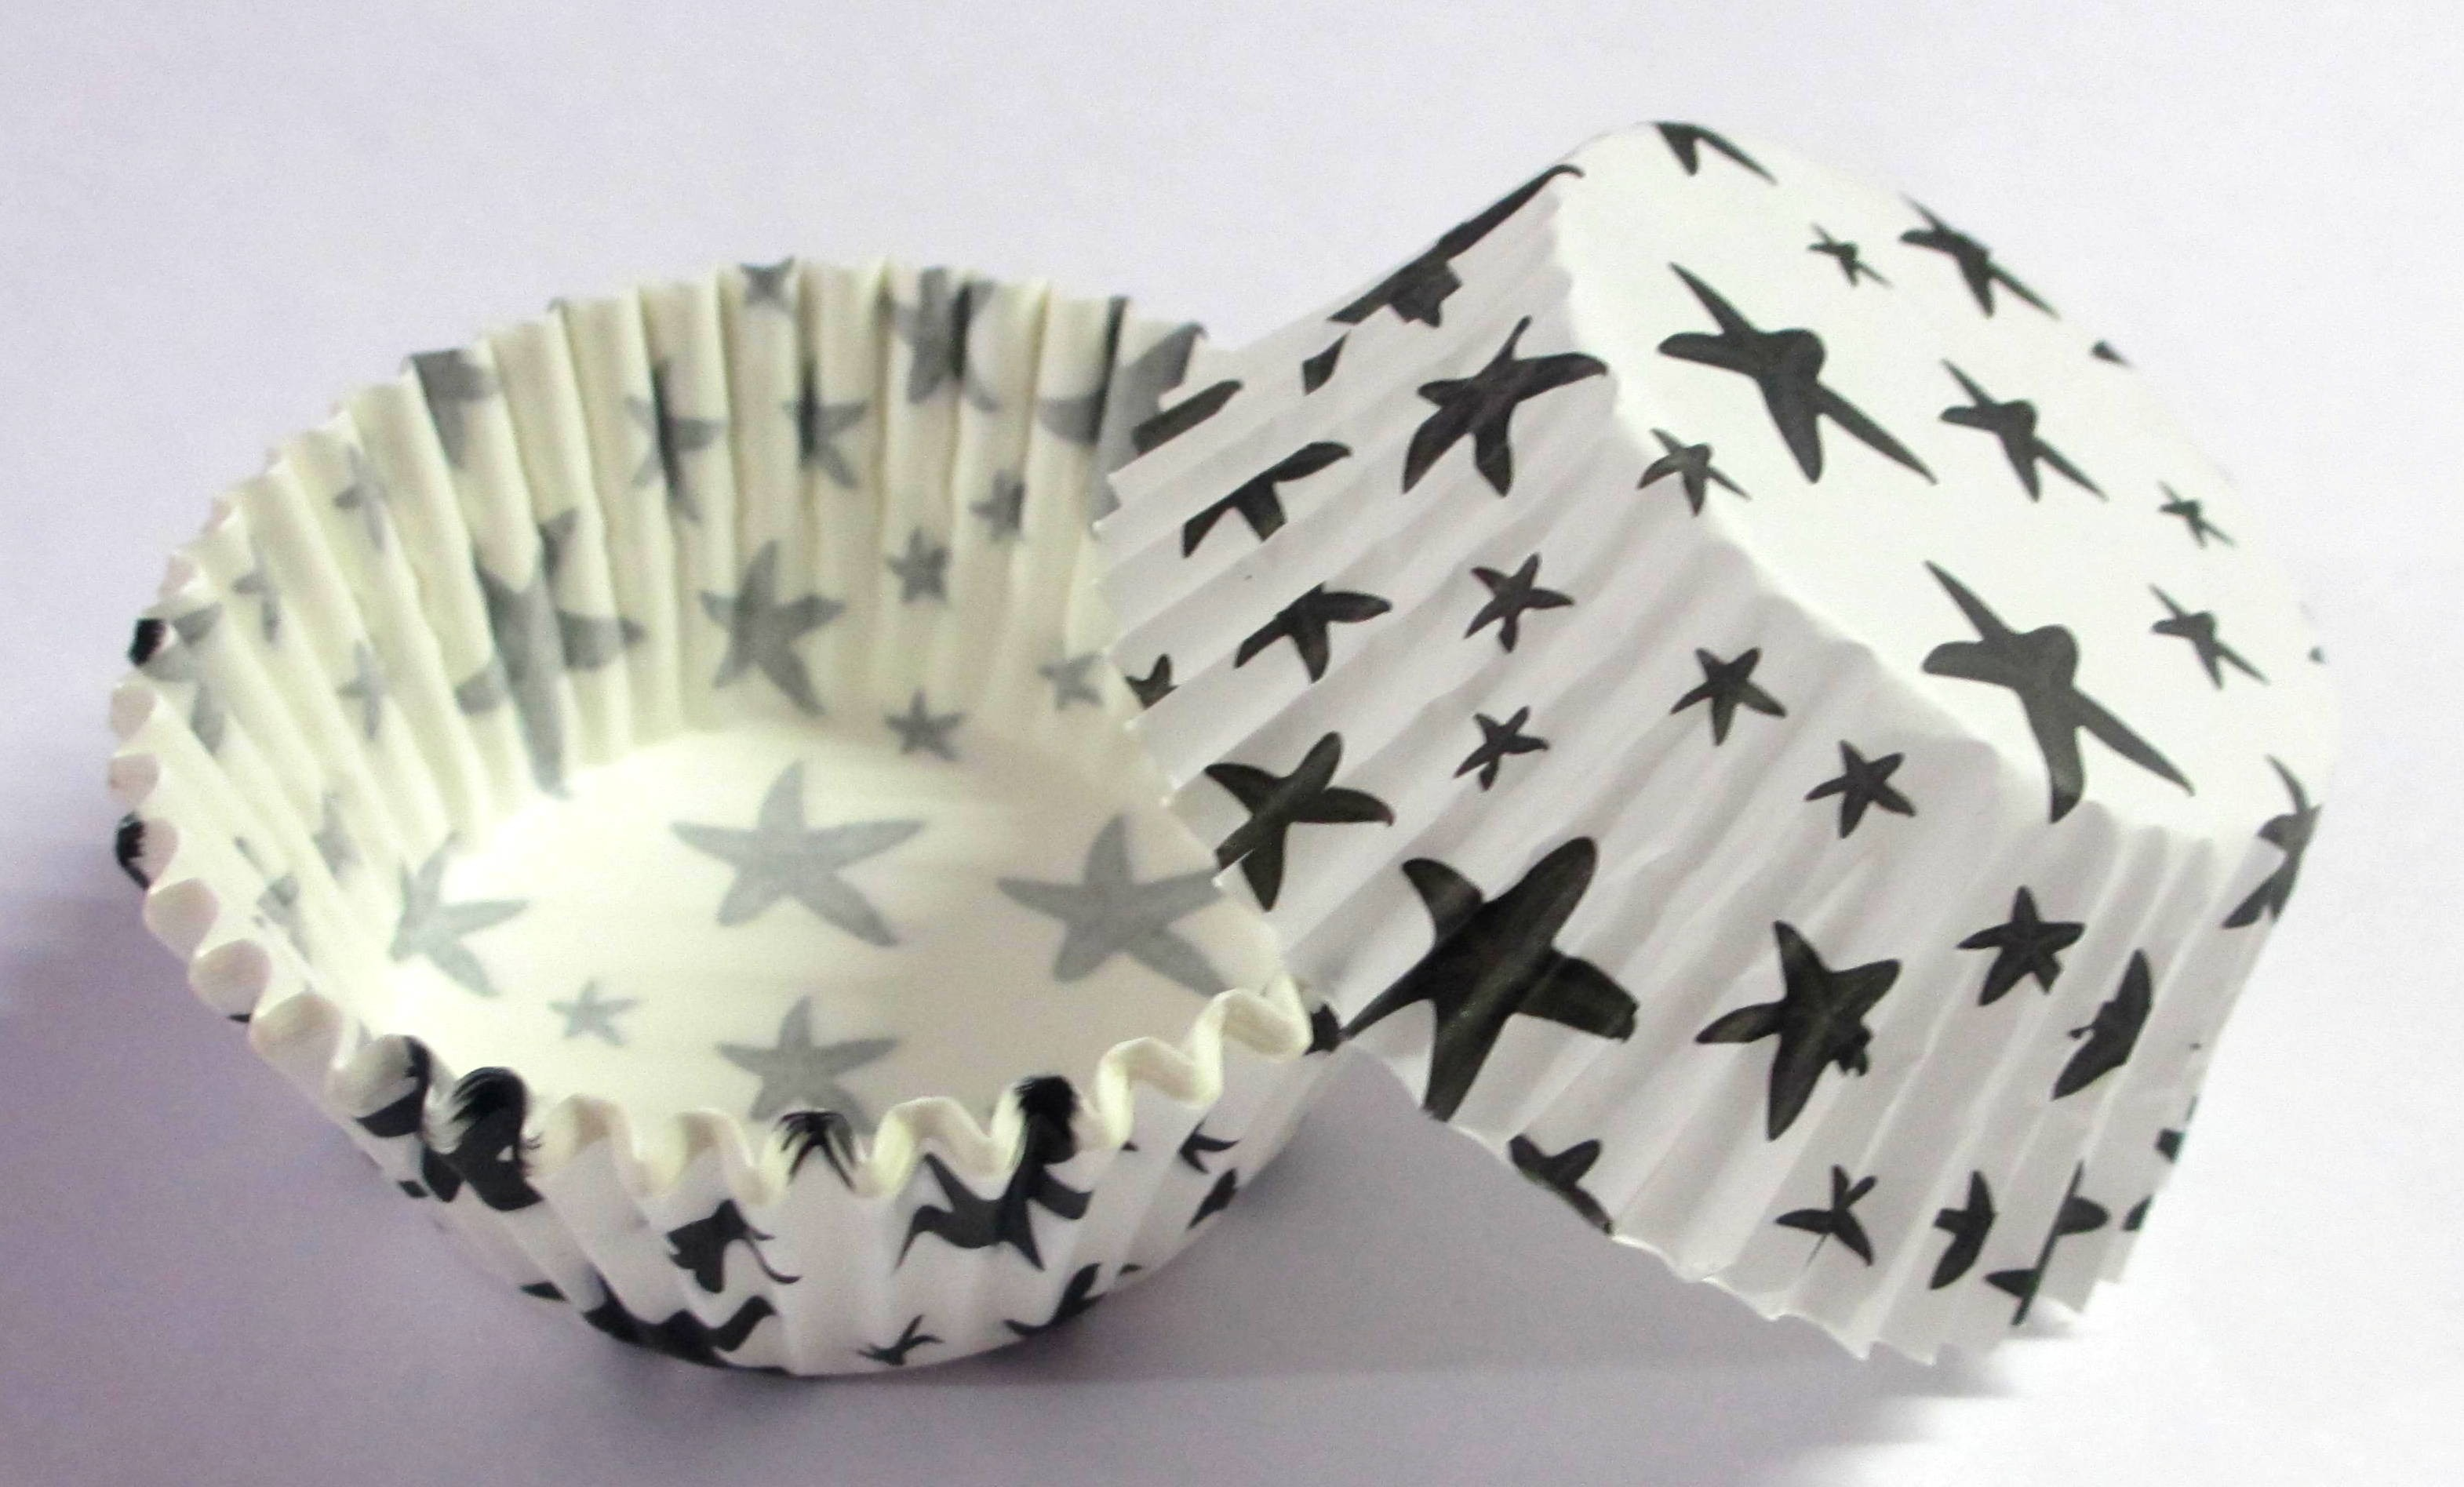 Star Print Cupcake Baking Cups (Pack Of 100) - Black